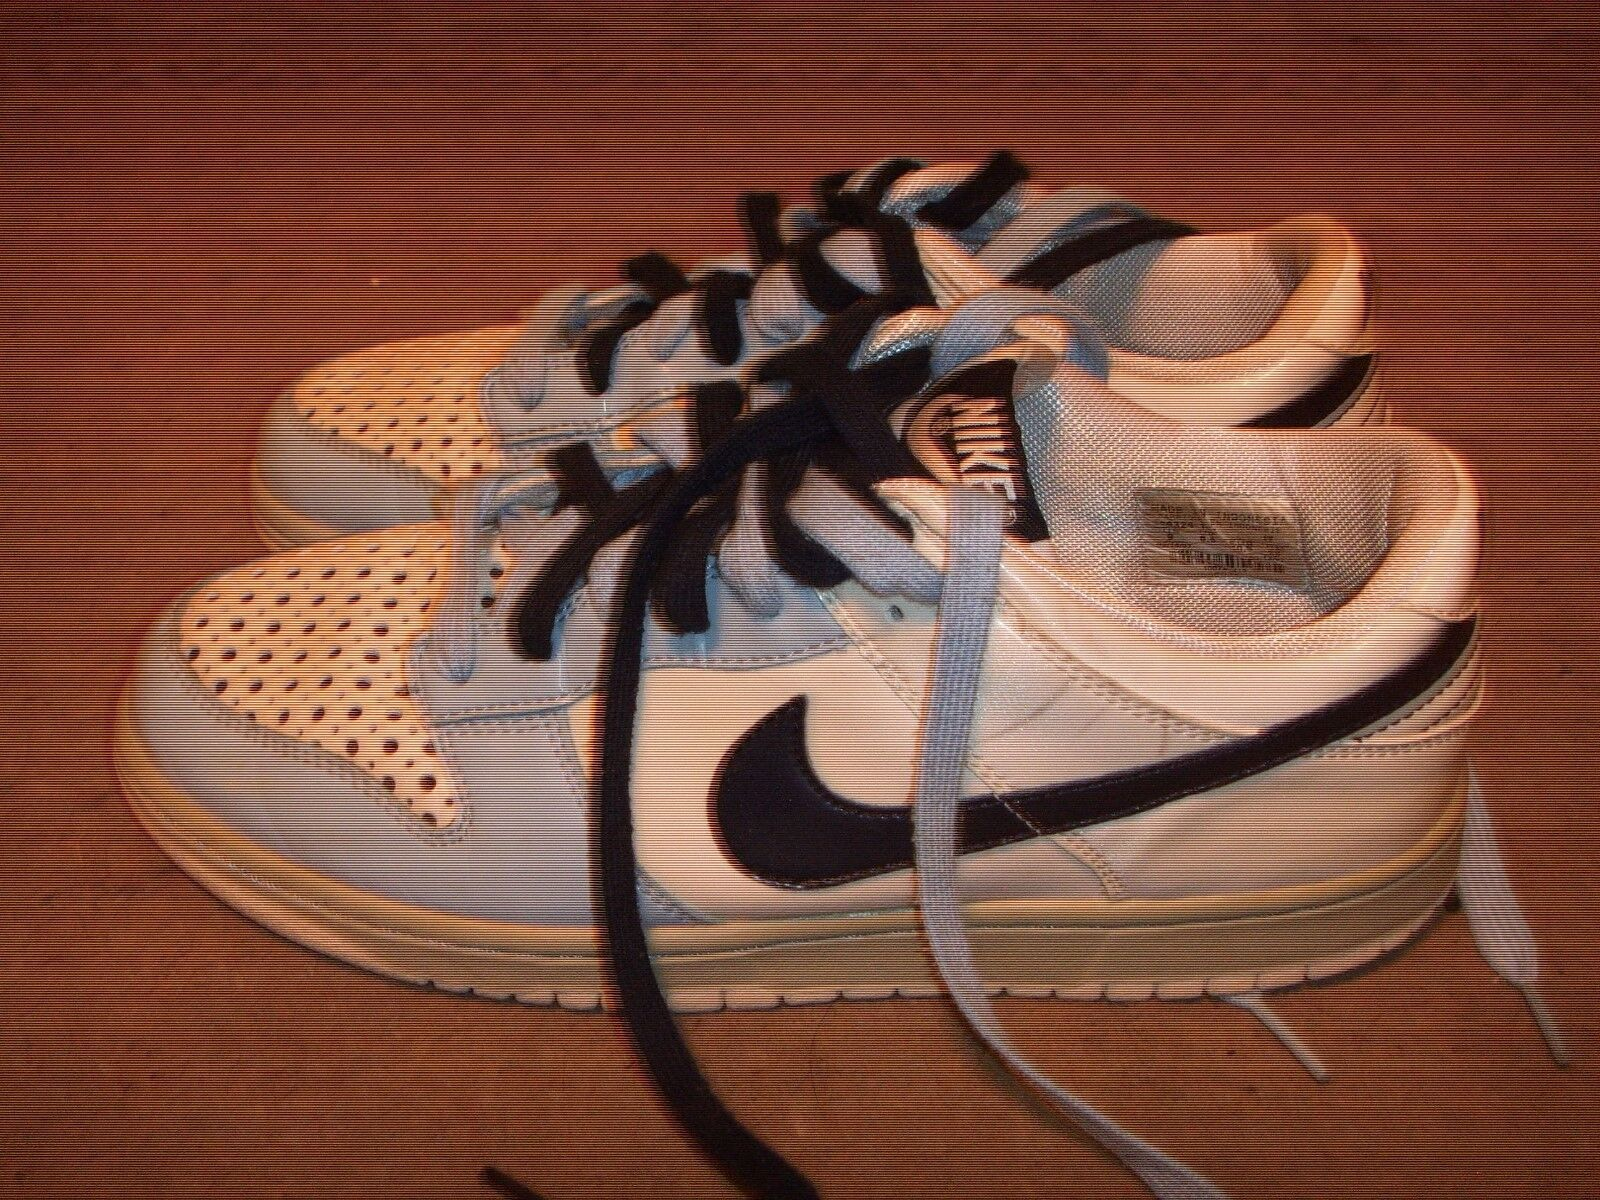 NIKE DUNK LOW 309324-145 Womens Comfortable New shoes for men and women, limited time discount